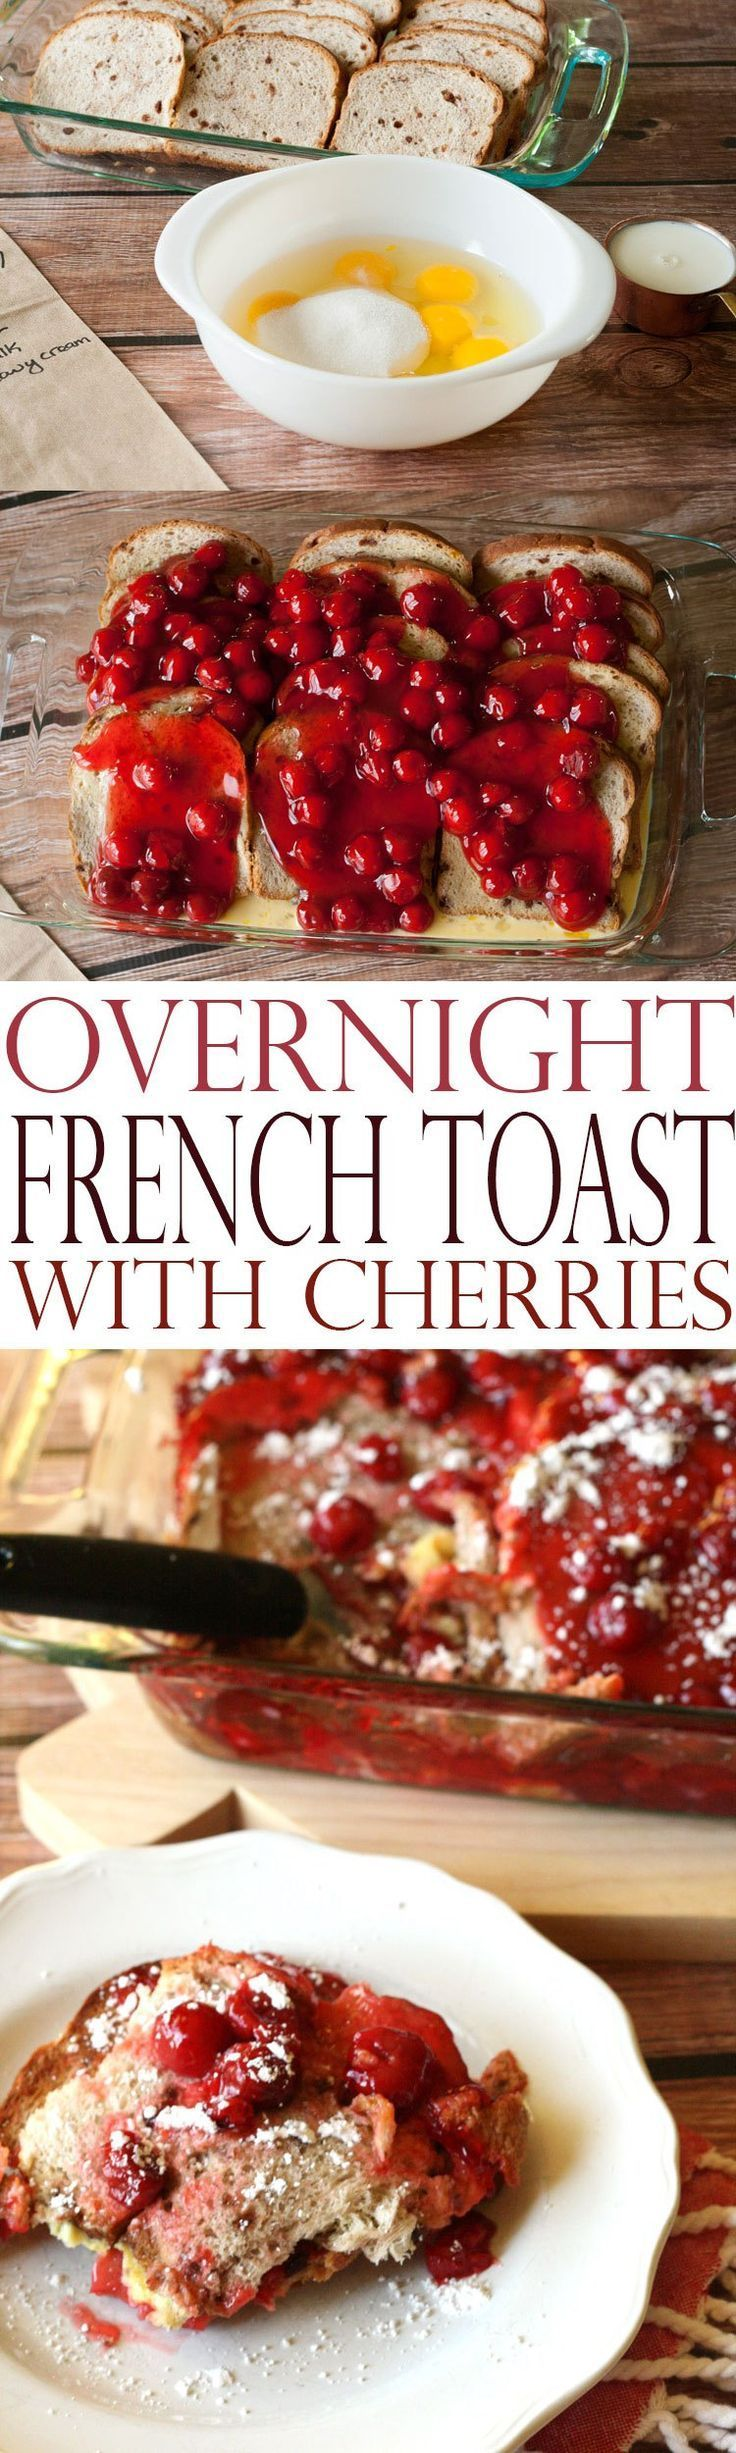 Overnight French Toast with Cherries is a delicious no-fuss breakfast recipe that is perfect for when you are looking for brunch recipes or easy breakfast recipes.